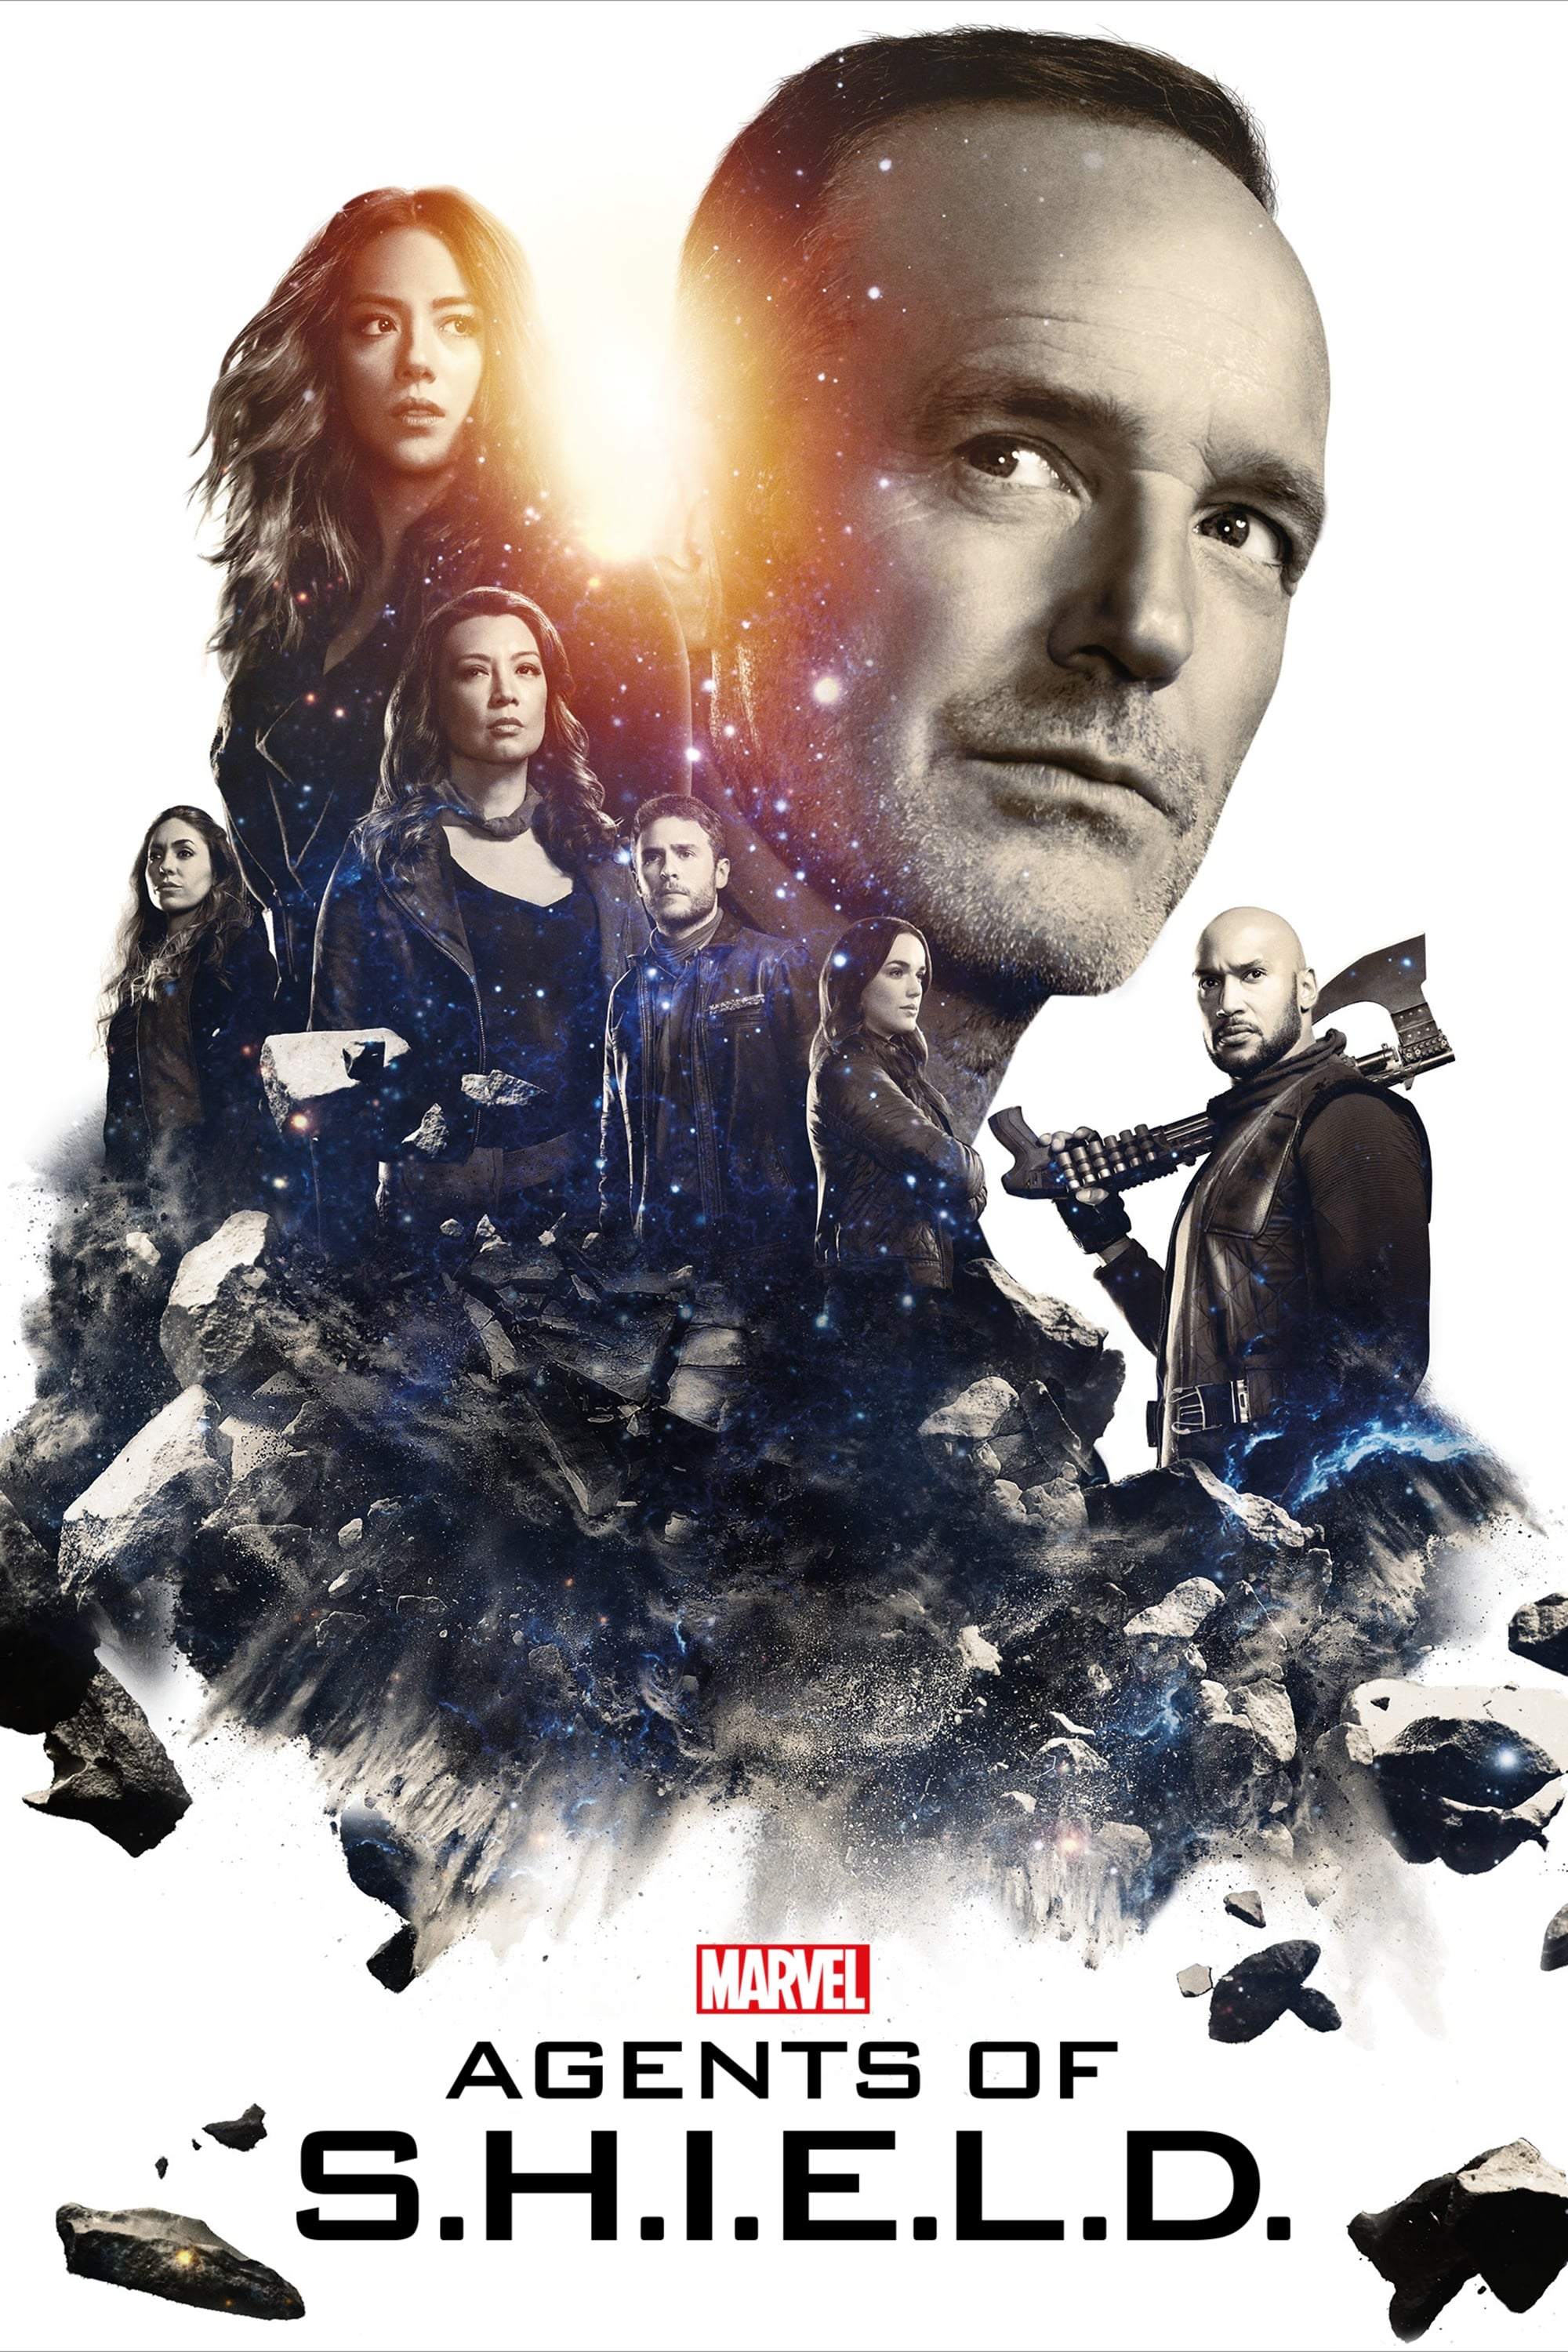 Agents of S.H.I.E.L.D. – Todas as Temporadas Dublado / Legendado (2013)